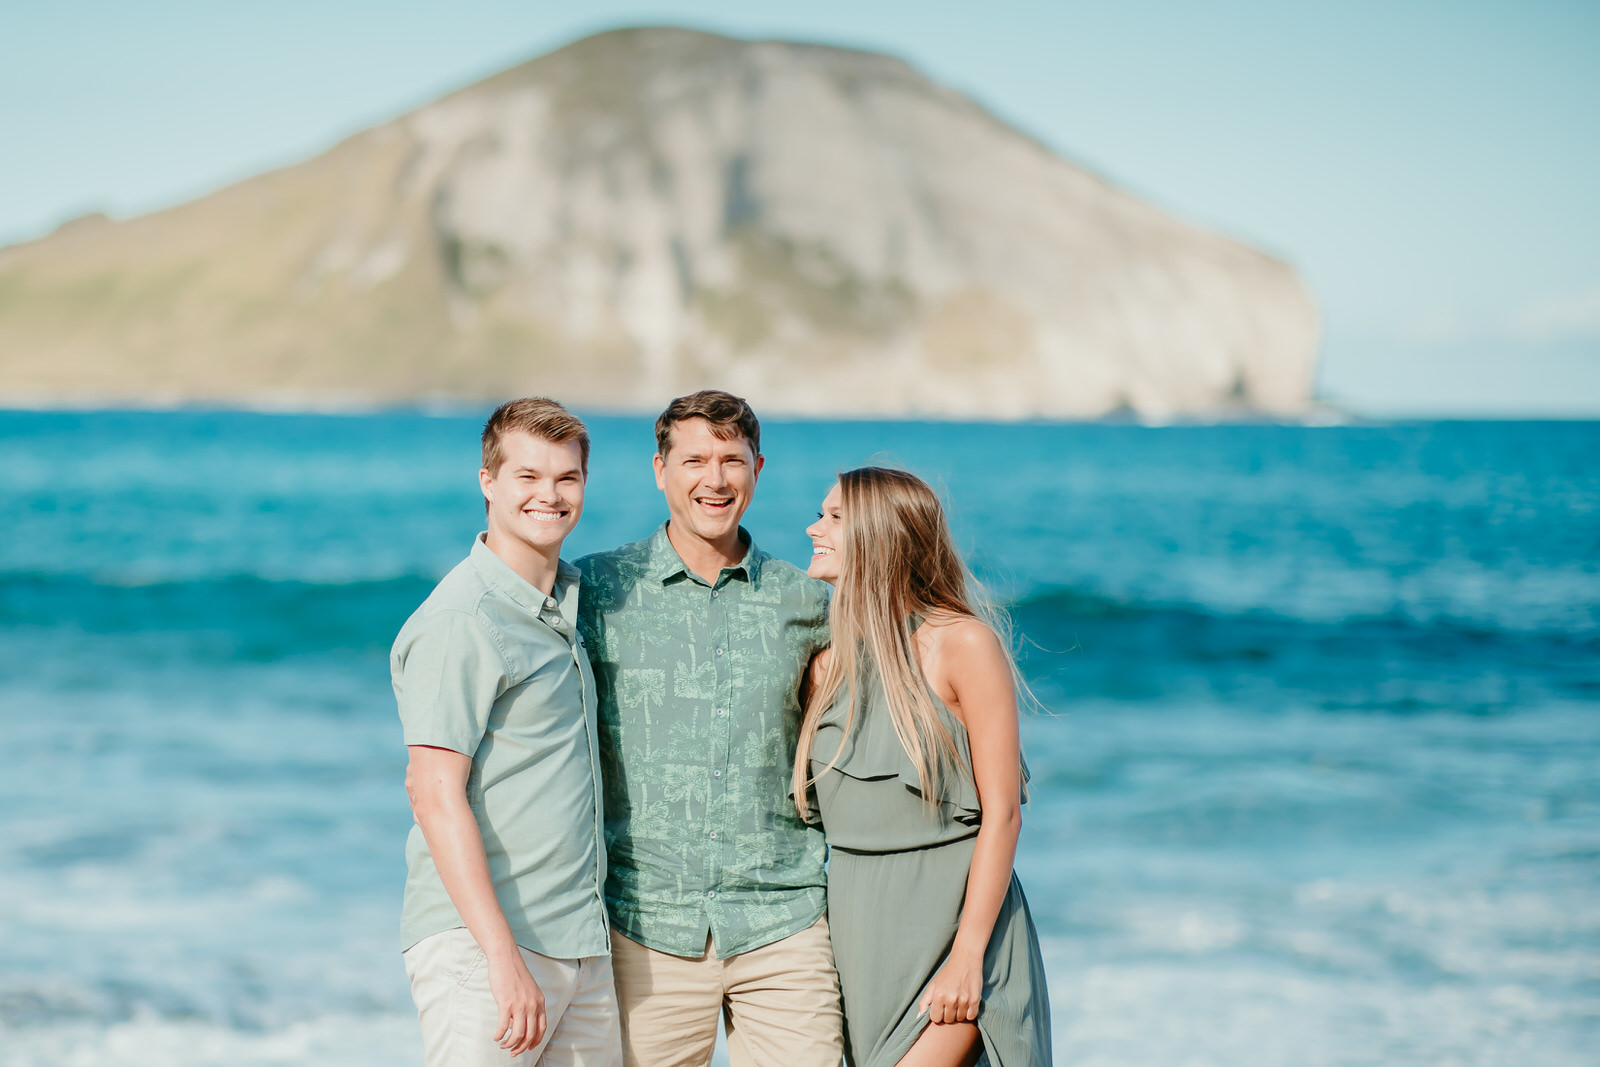 Campbell Family Vacation in Makapuu - Hawaii Family photographer - Ketino Photography -91.jpg